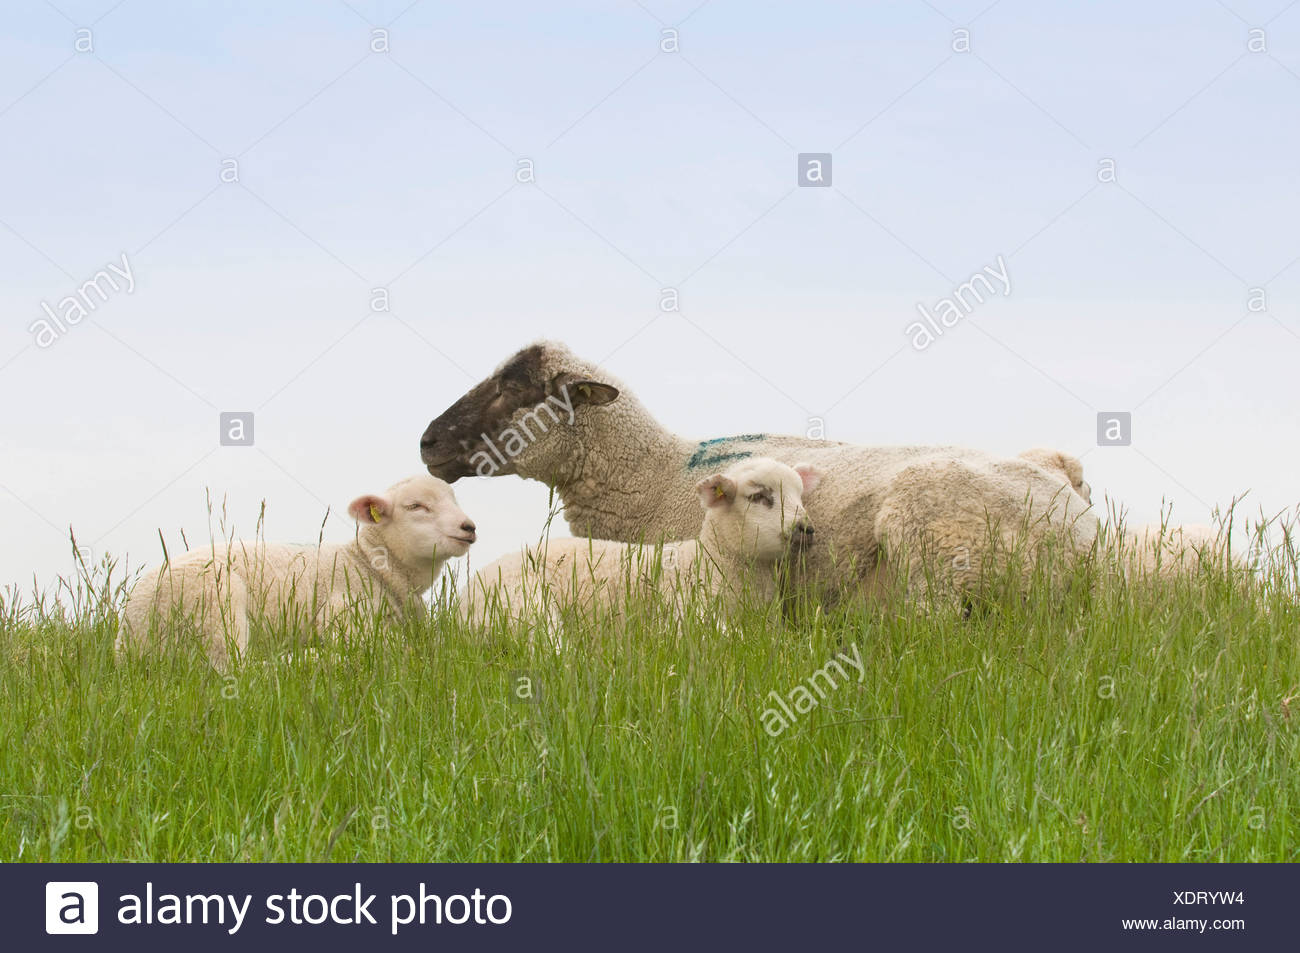 Sheep and two lambs lying on the dyke, Nationalpark Niedersaechsisches Wattenmeer, Lower Saxony Wadden Sea National Park, Lower Stock Photo